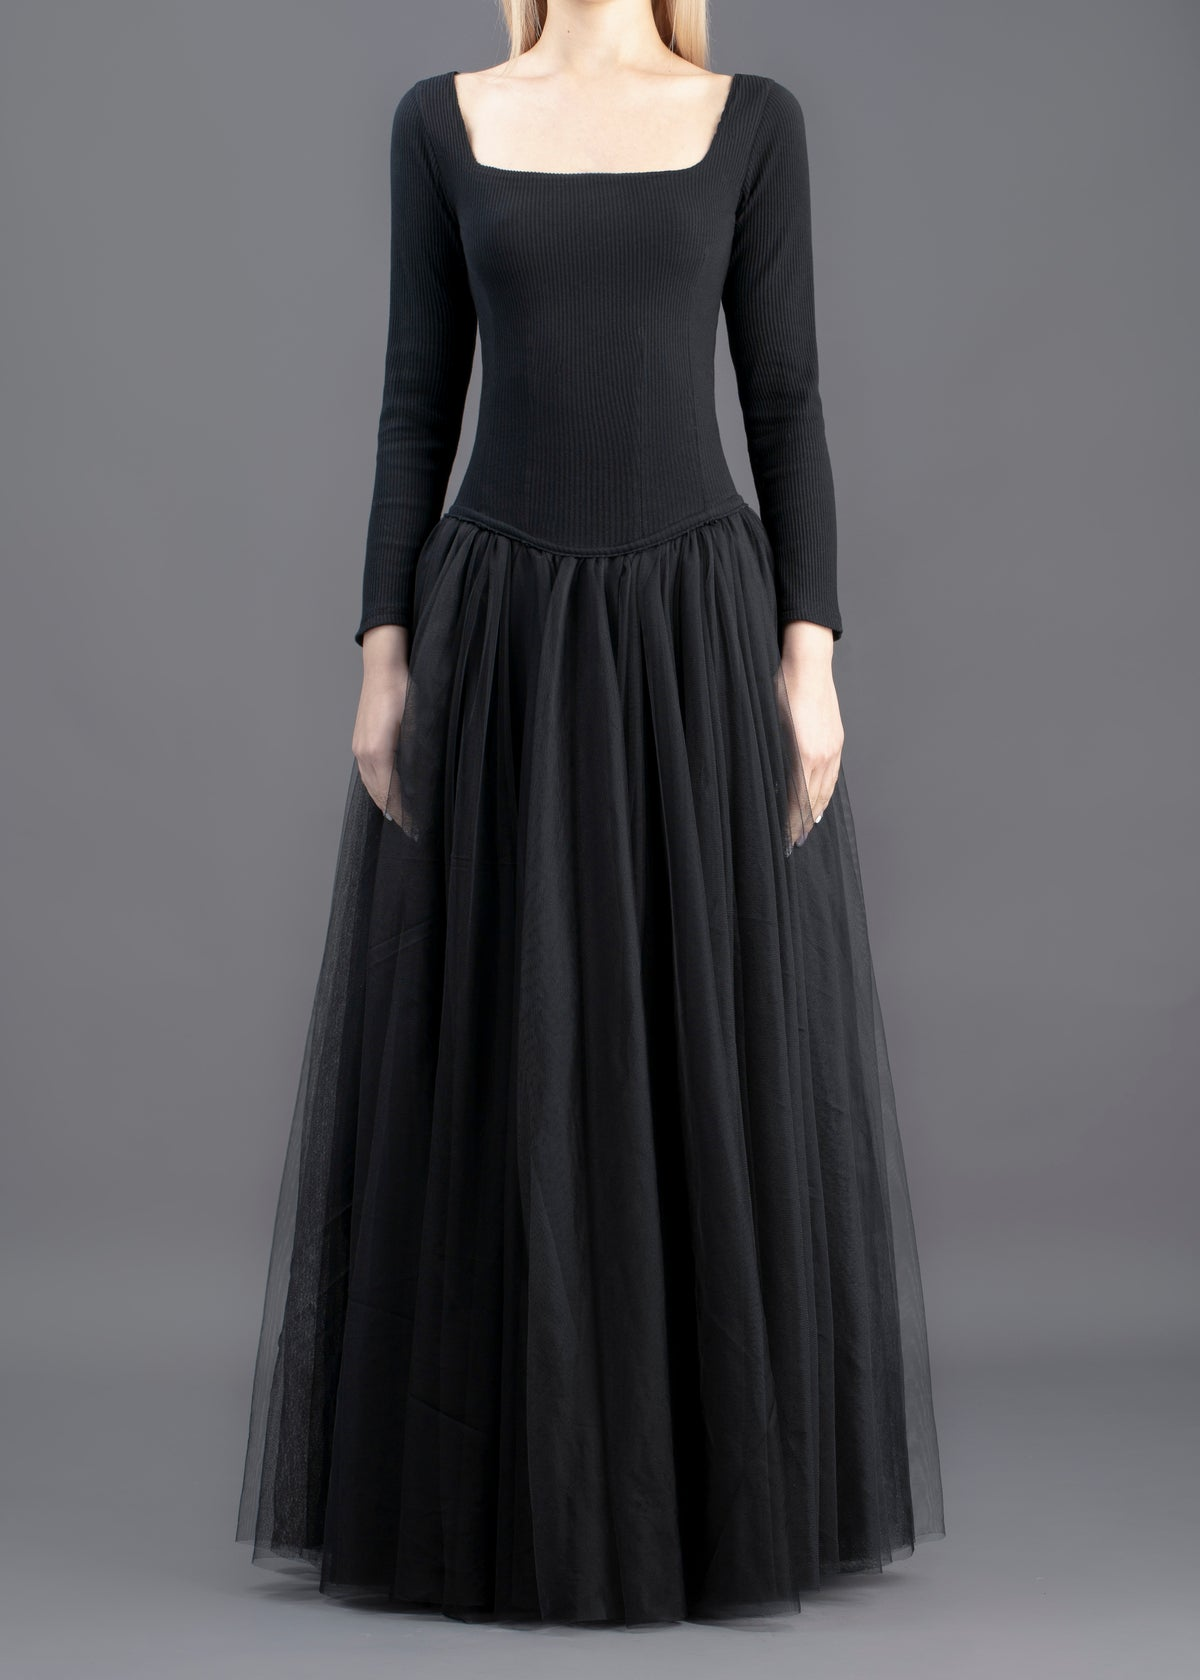 Image of Sophie Tulle Long Dress - Black